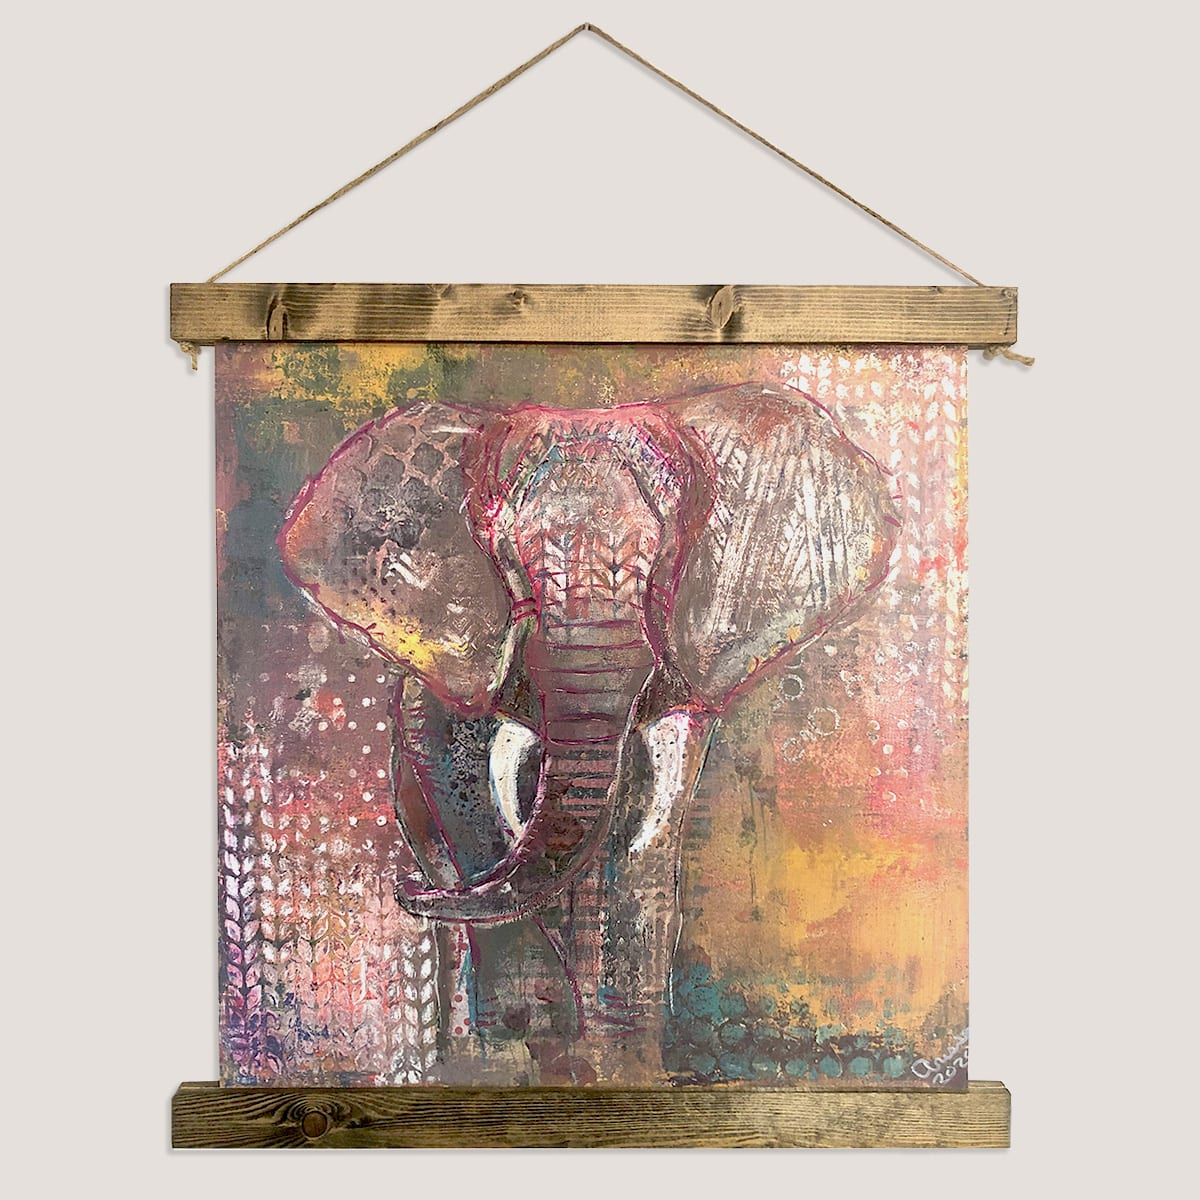 Hanging custom canvas photo print with wood frame of a painted elephant designed by JKCC custom printing and design shop in Paola KS